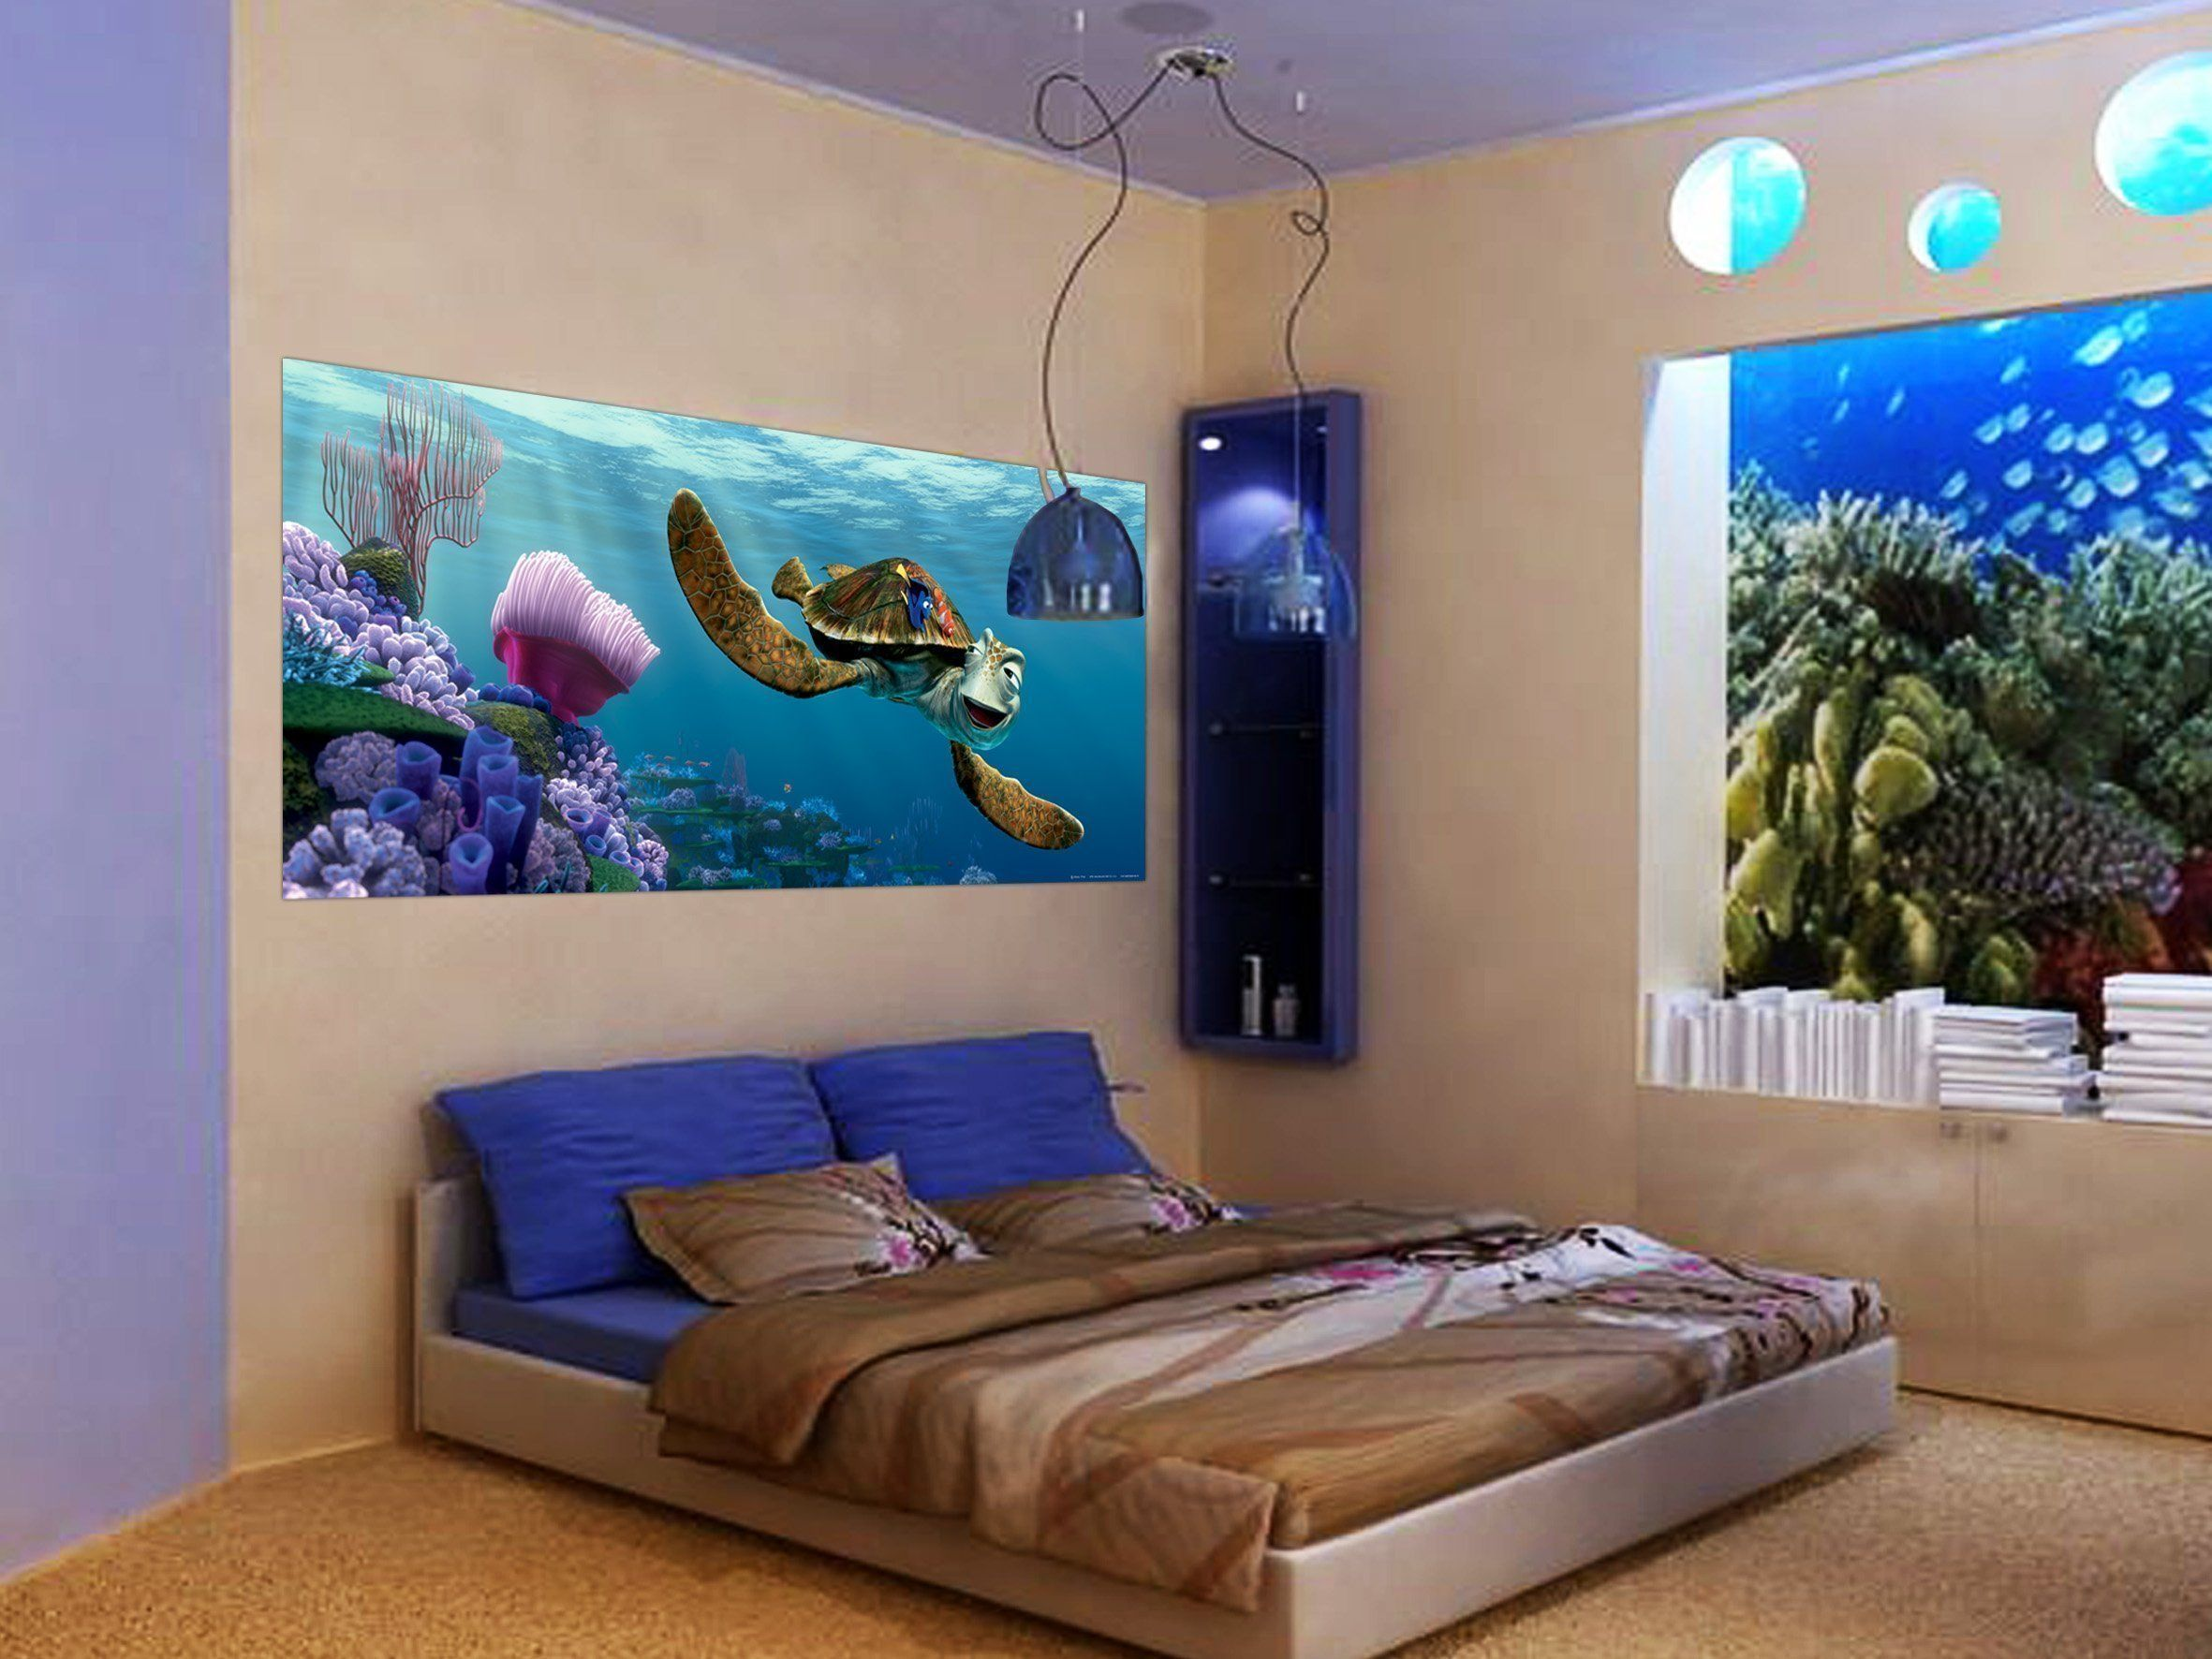 Wallandmore Disney Finding Nemo Wall Decal Mural For Boys Room